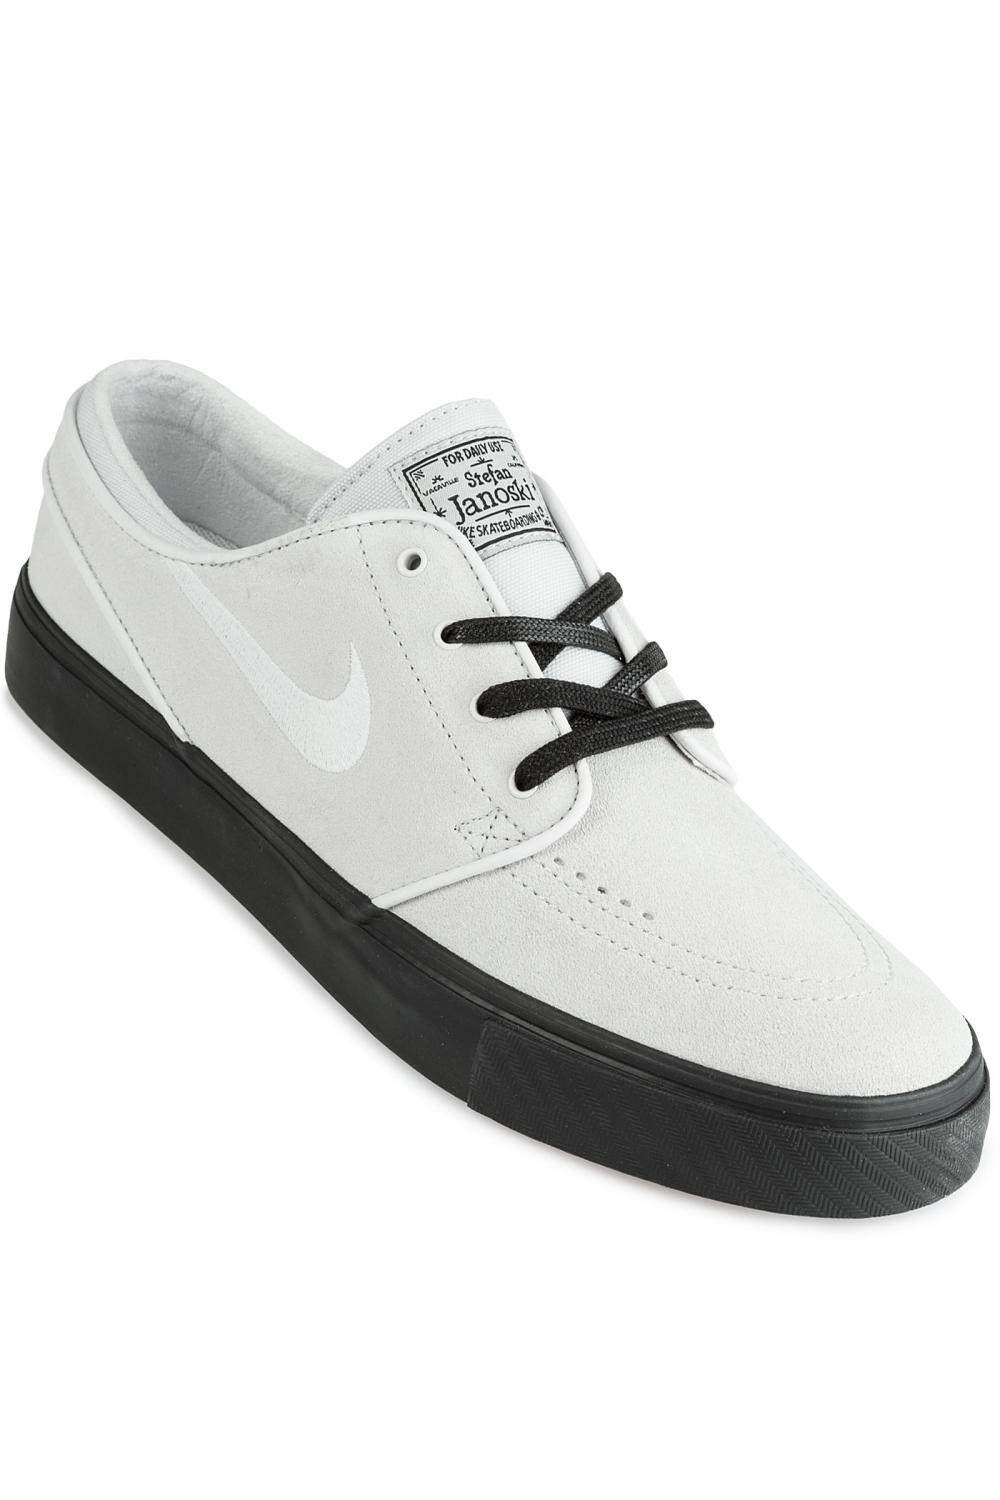 chaussure nike dunk homme,Nike SB Chaussures skate shoes Zoom ...